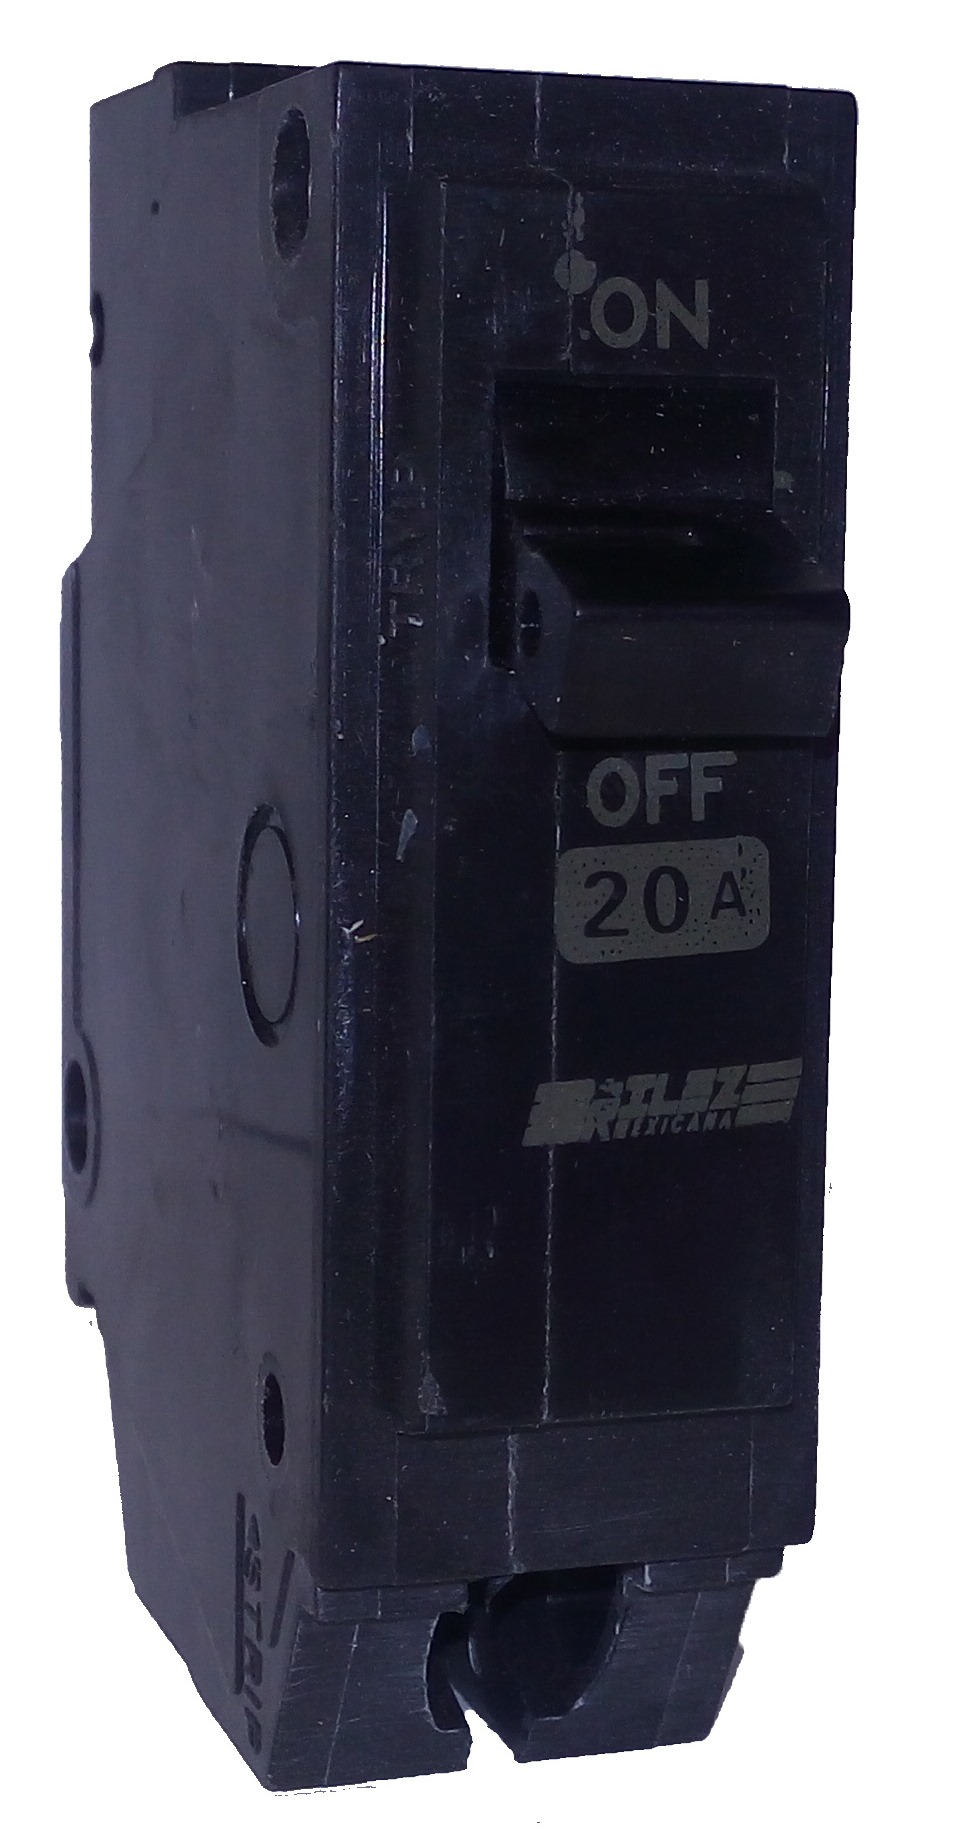 INTERRUPTOR TERM. 1 X 20 A TIPO QP